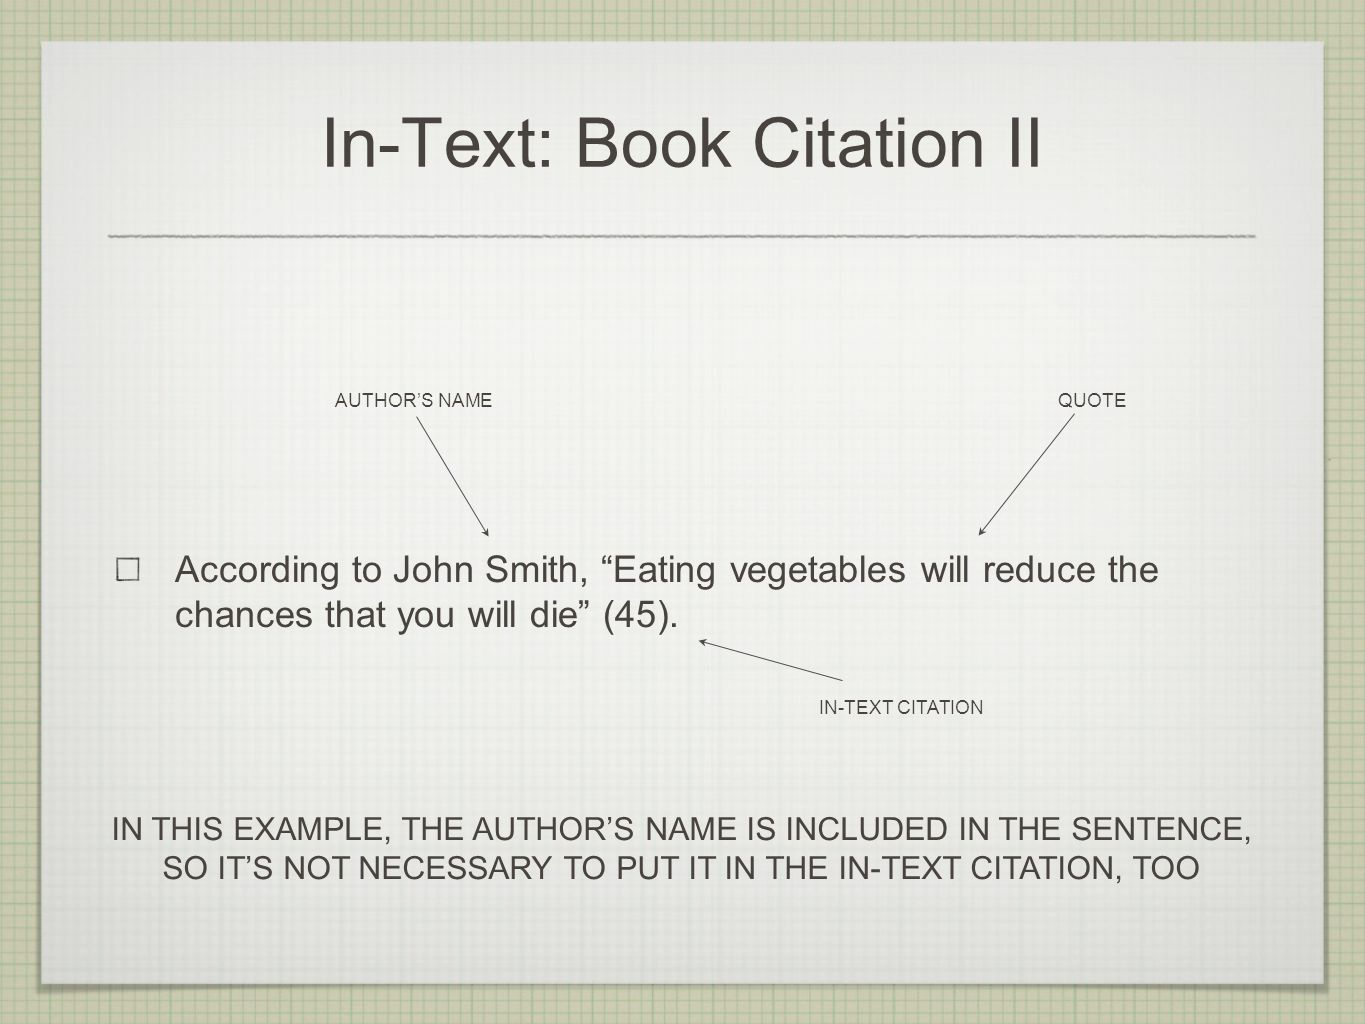 In-Text: Book Citation II According to John Smith, Eating vegetables will reduce the chances that you will die (45).